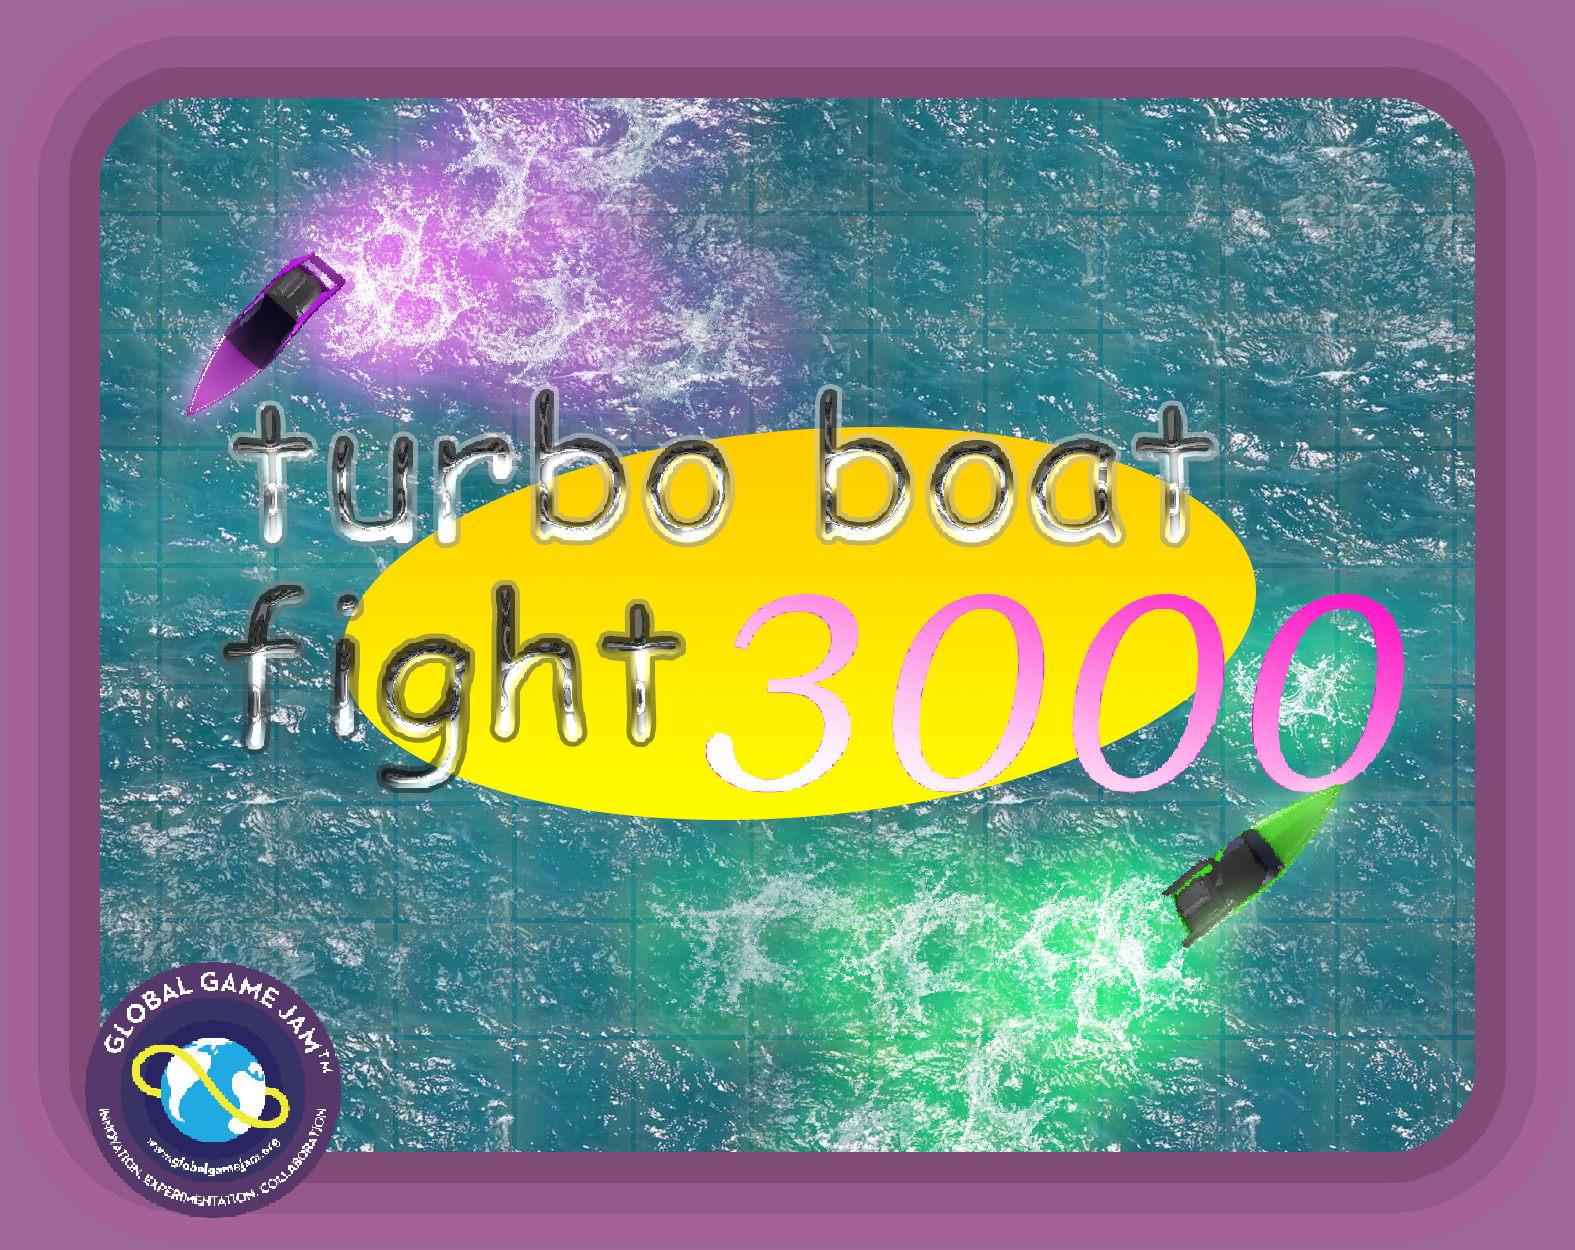 Turbo Boat Fight 3000